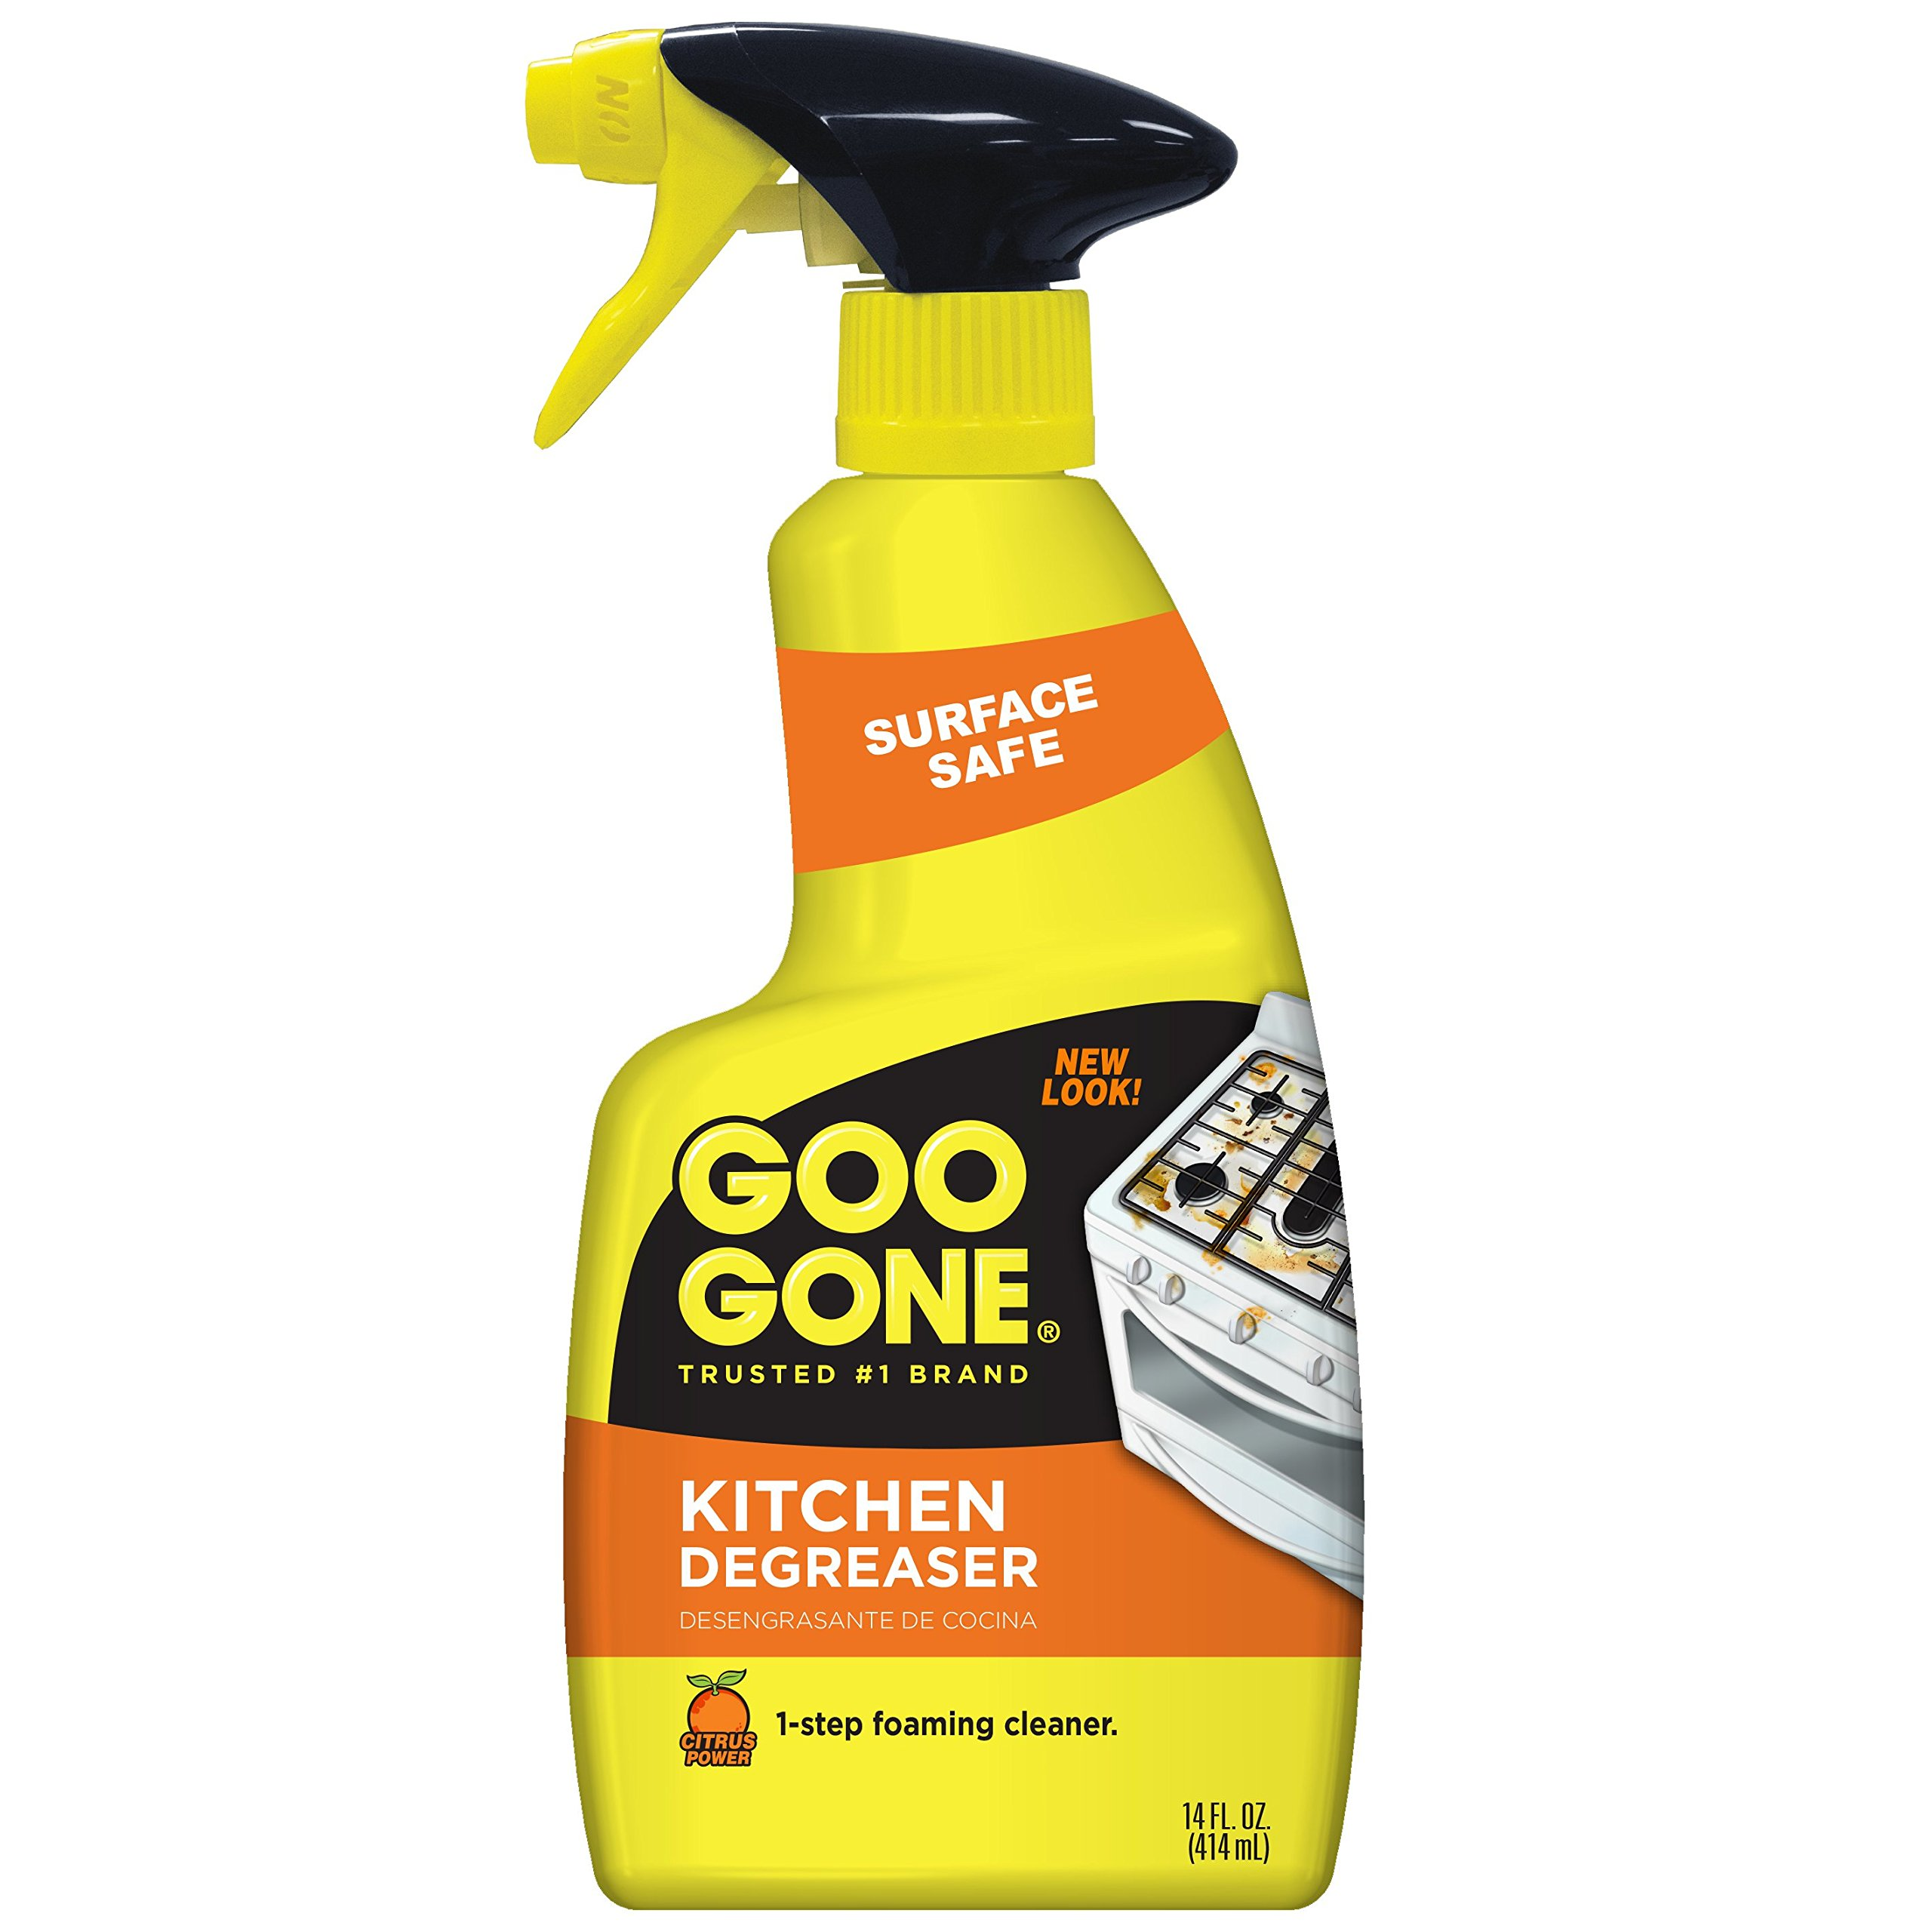 amazoncom goo gone kitchen degreaser removes kitchen grease grime and baked on food 14 fl oz health personal care - Best Kitchen Degreaser